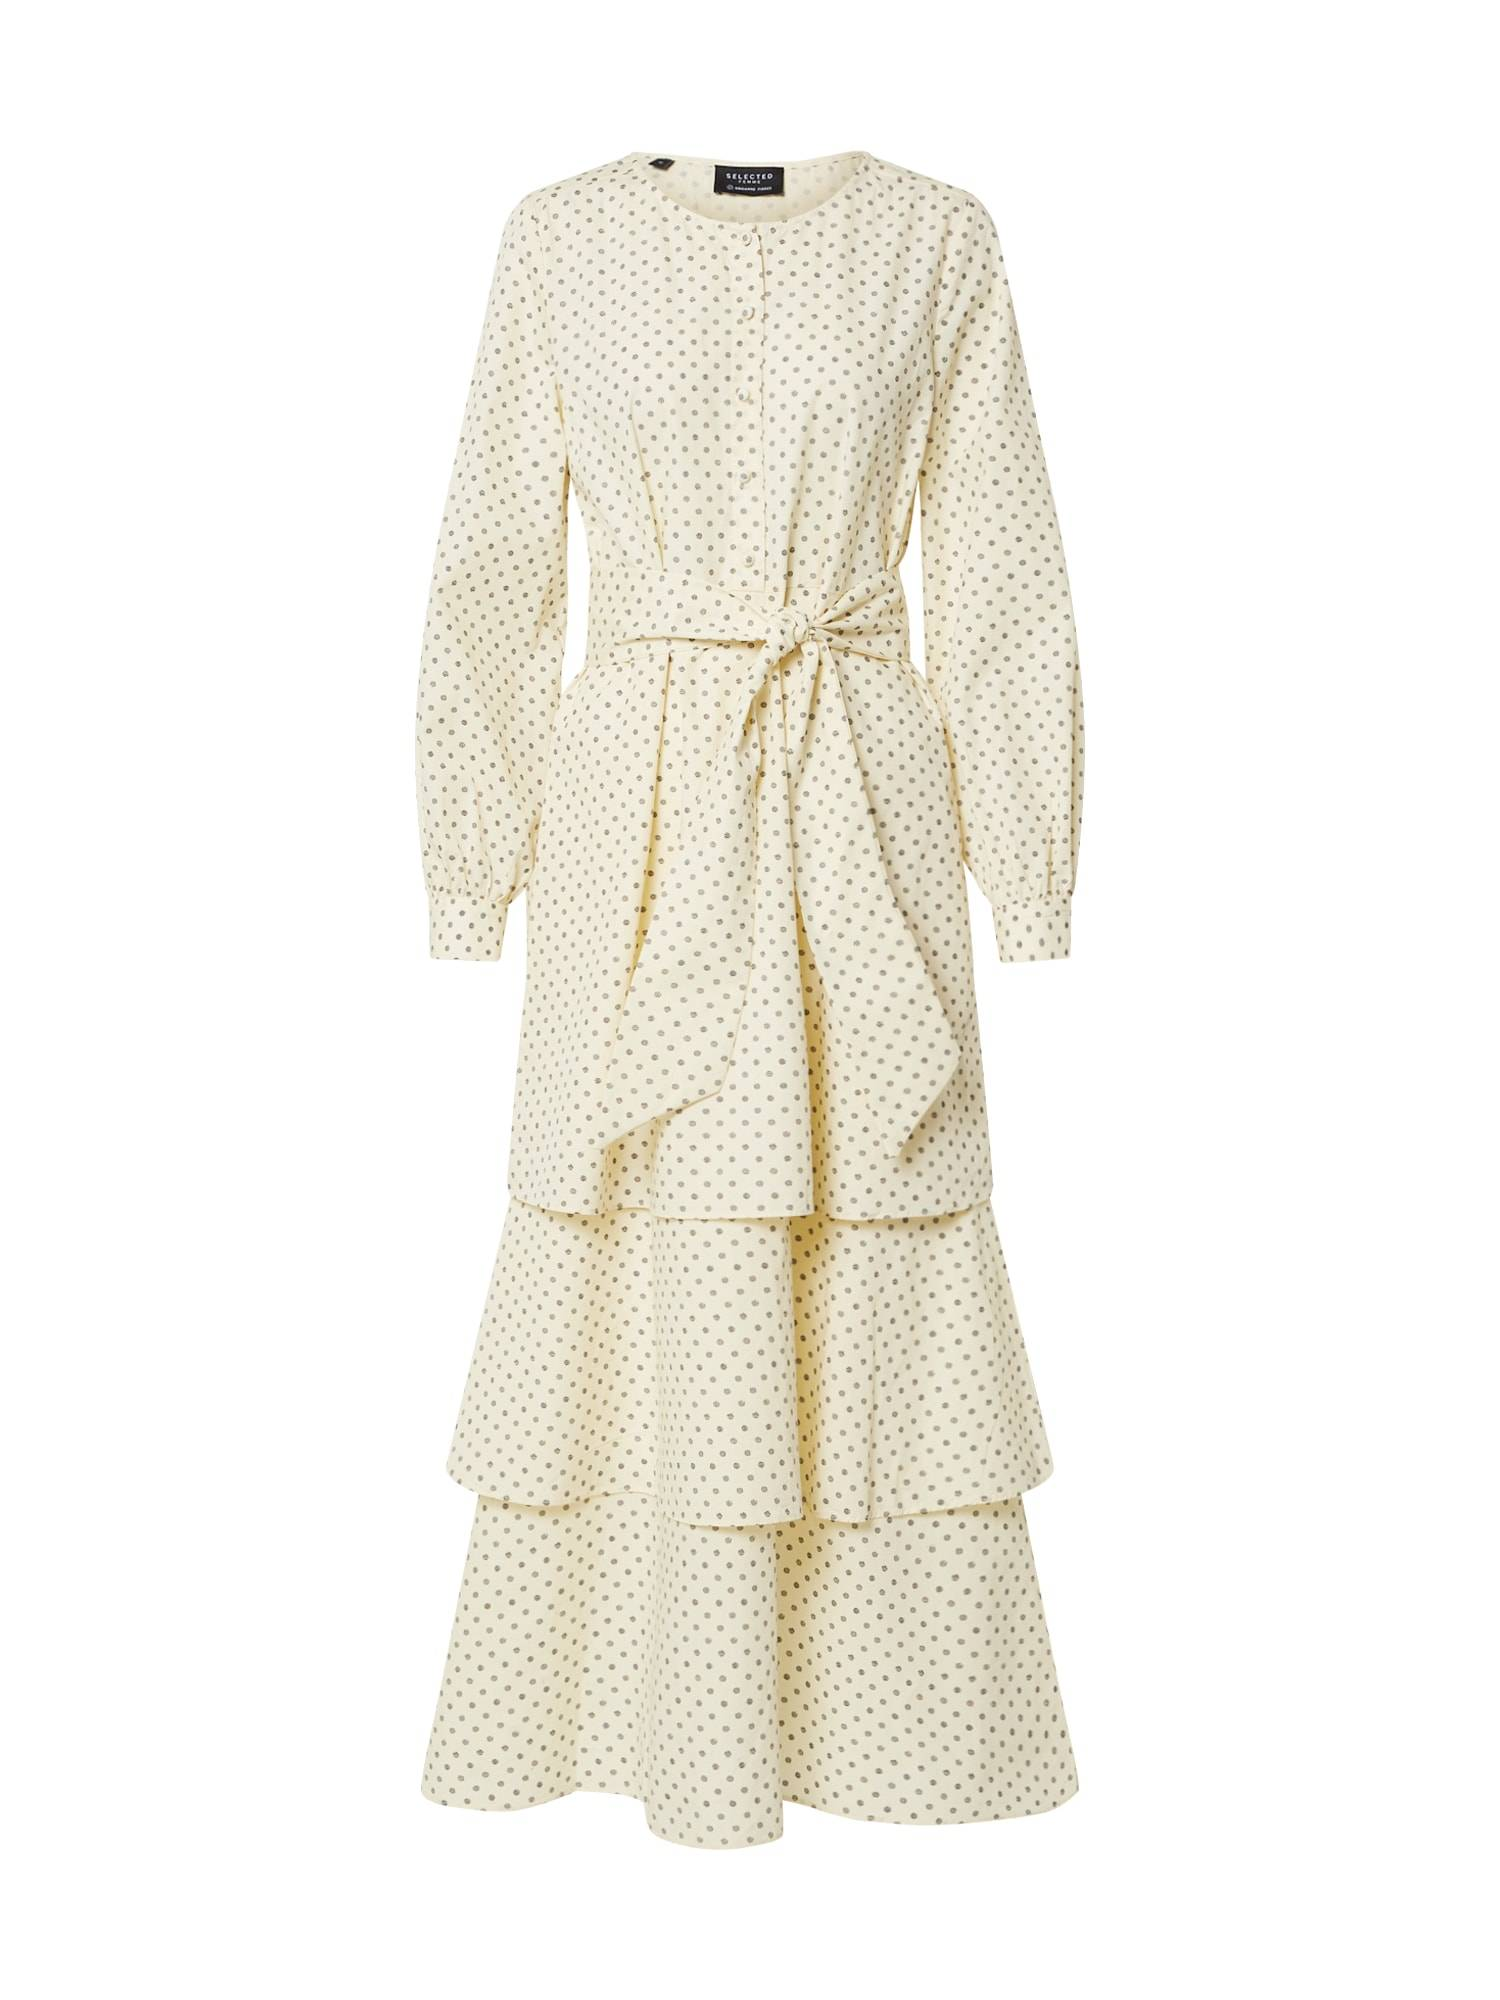 SELECTED FEMME Robe  - Beige - Taille: 34 - female